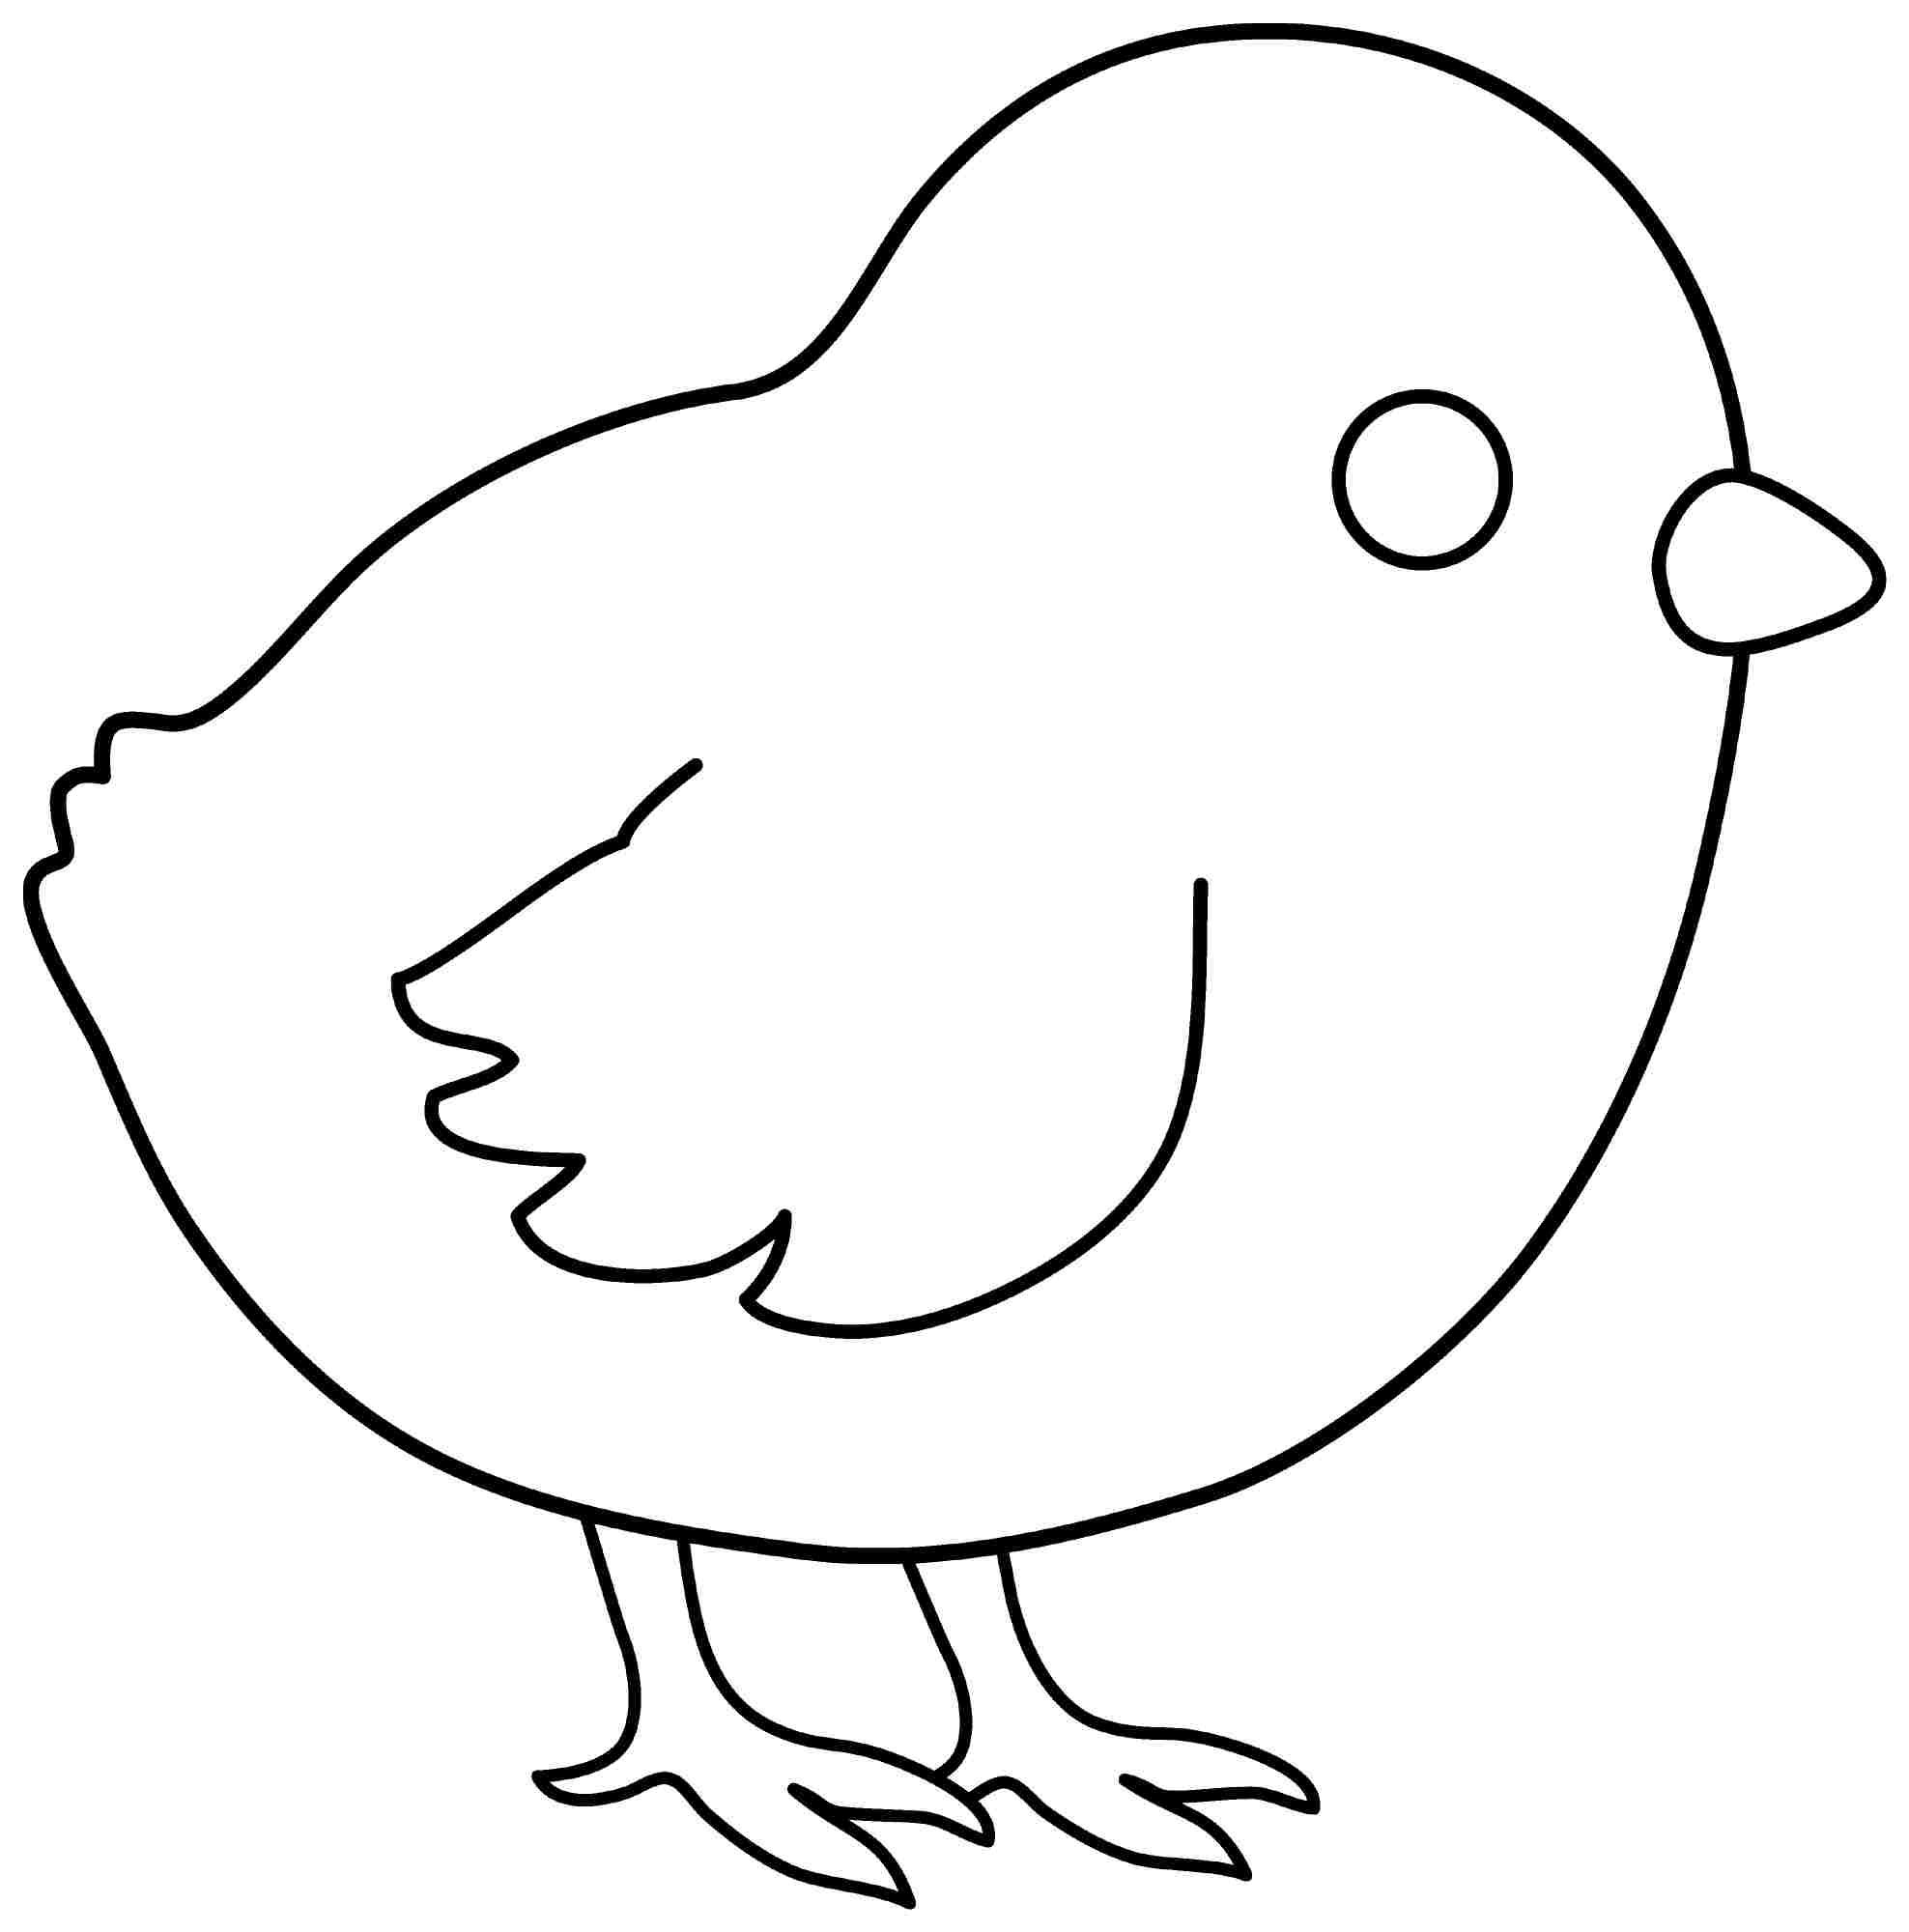 Printable Colouring Sheets Animal Chicken For Kids Amp Boys